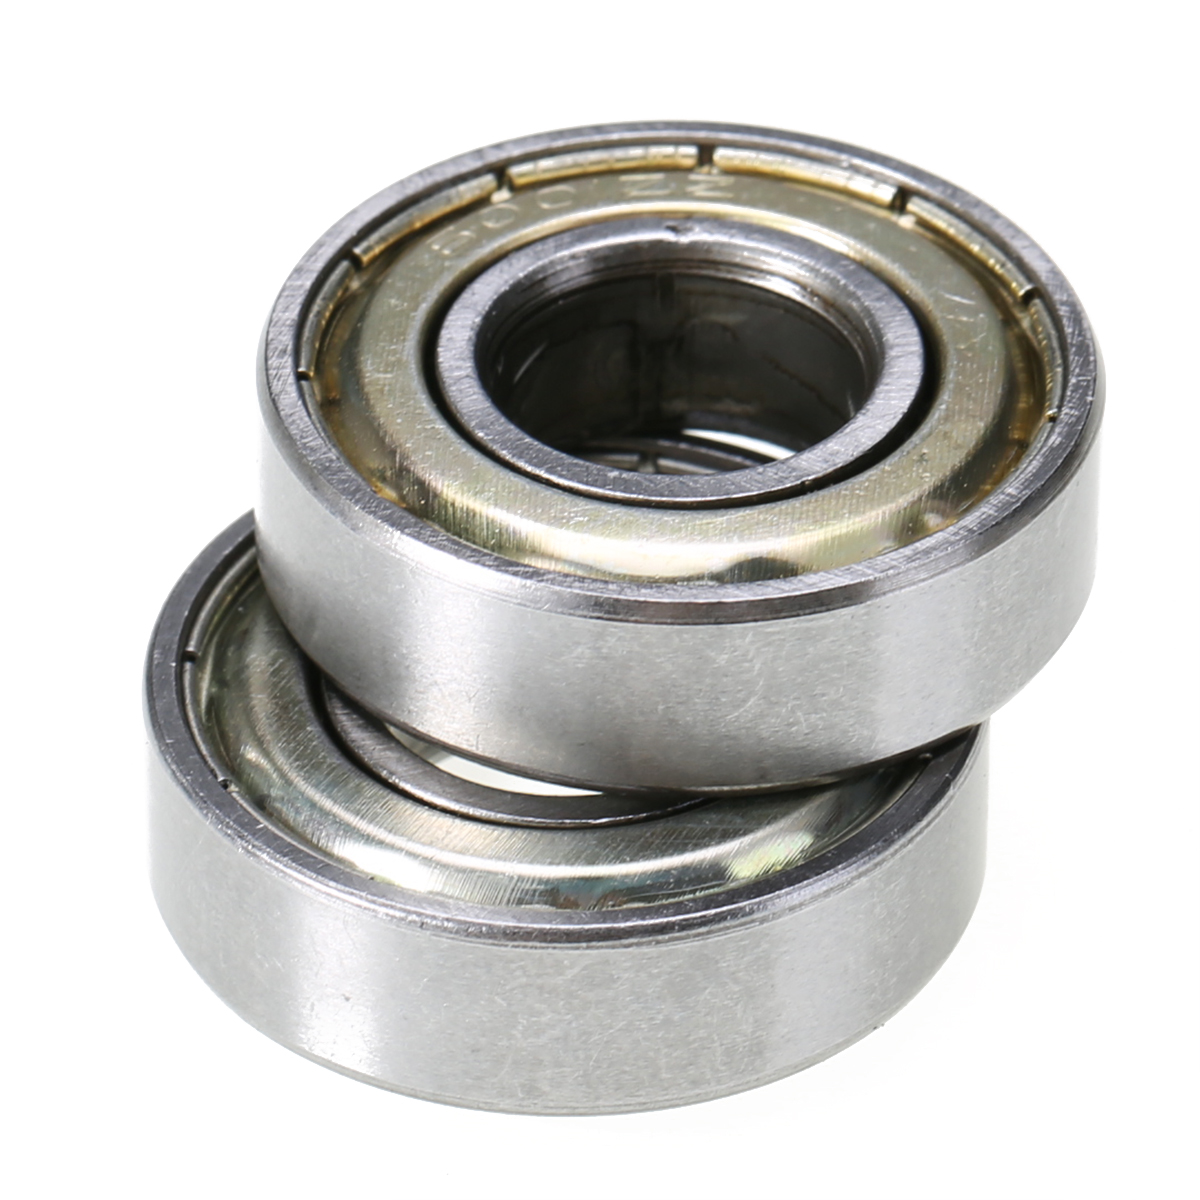 5Pcs/Set Deep Groove Ball Bearings 6001ZZ Shielded Radial Bearing 12mm x 28mm 8mm for Agricultural Conveying